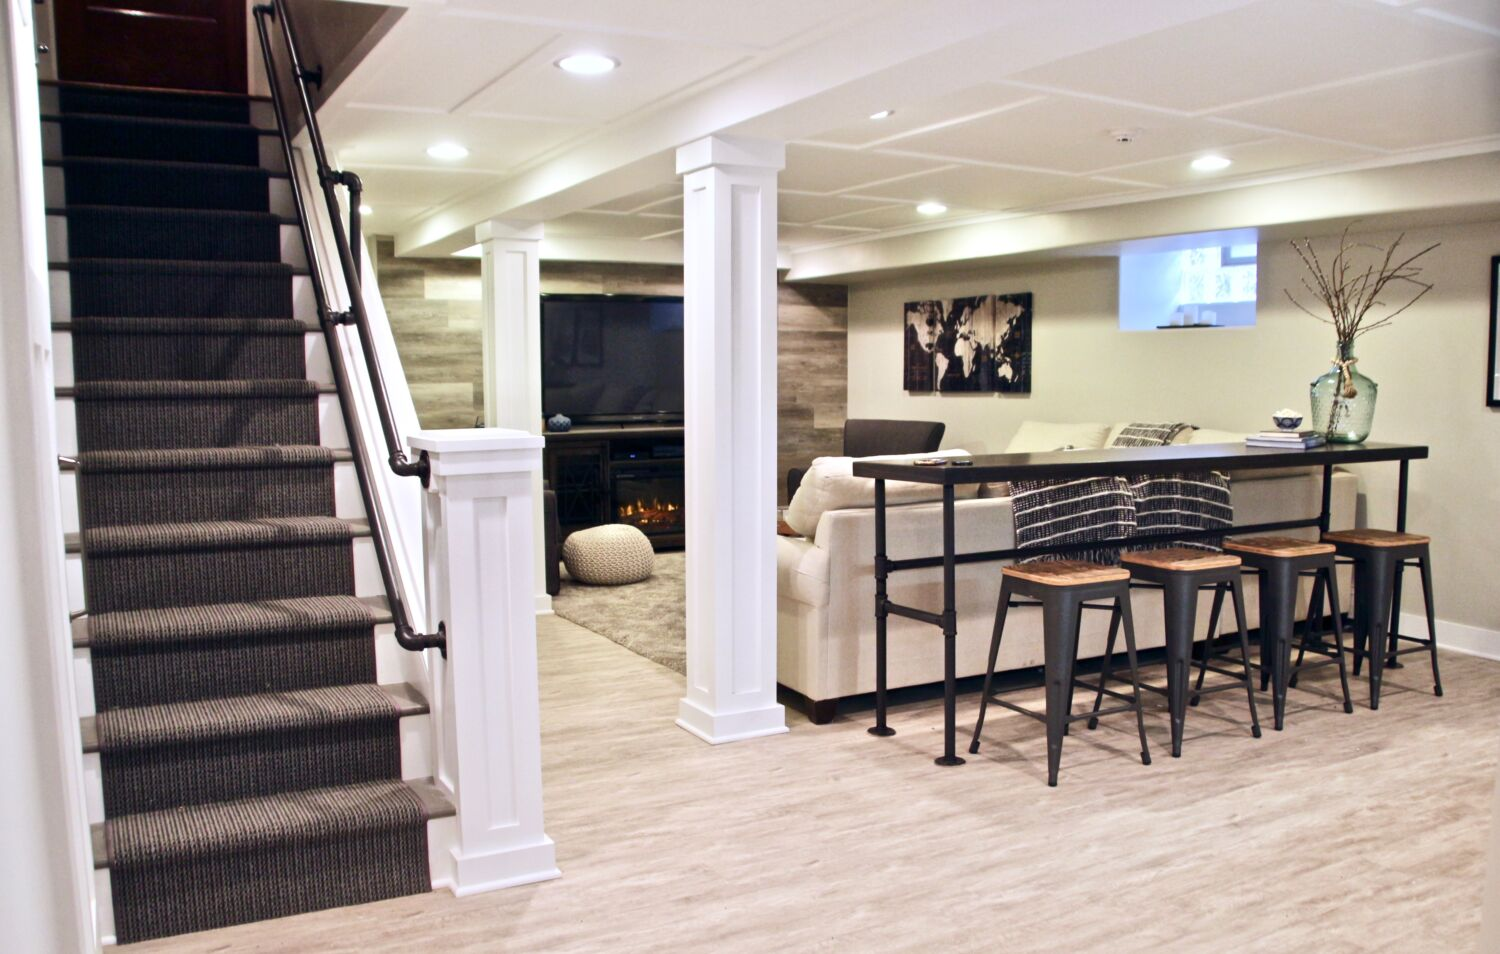 Meme_HIll_studio_Basement_remodel_renovation_fireplace_Raymour_flanigan_Elise